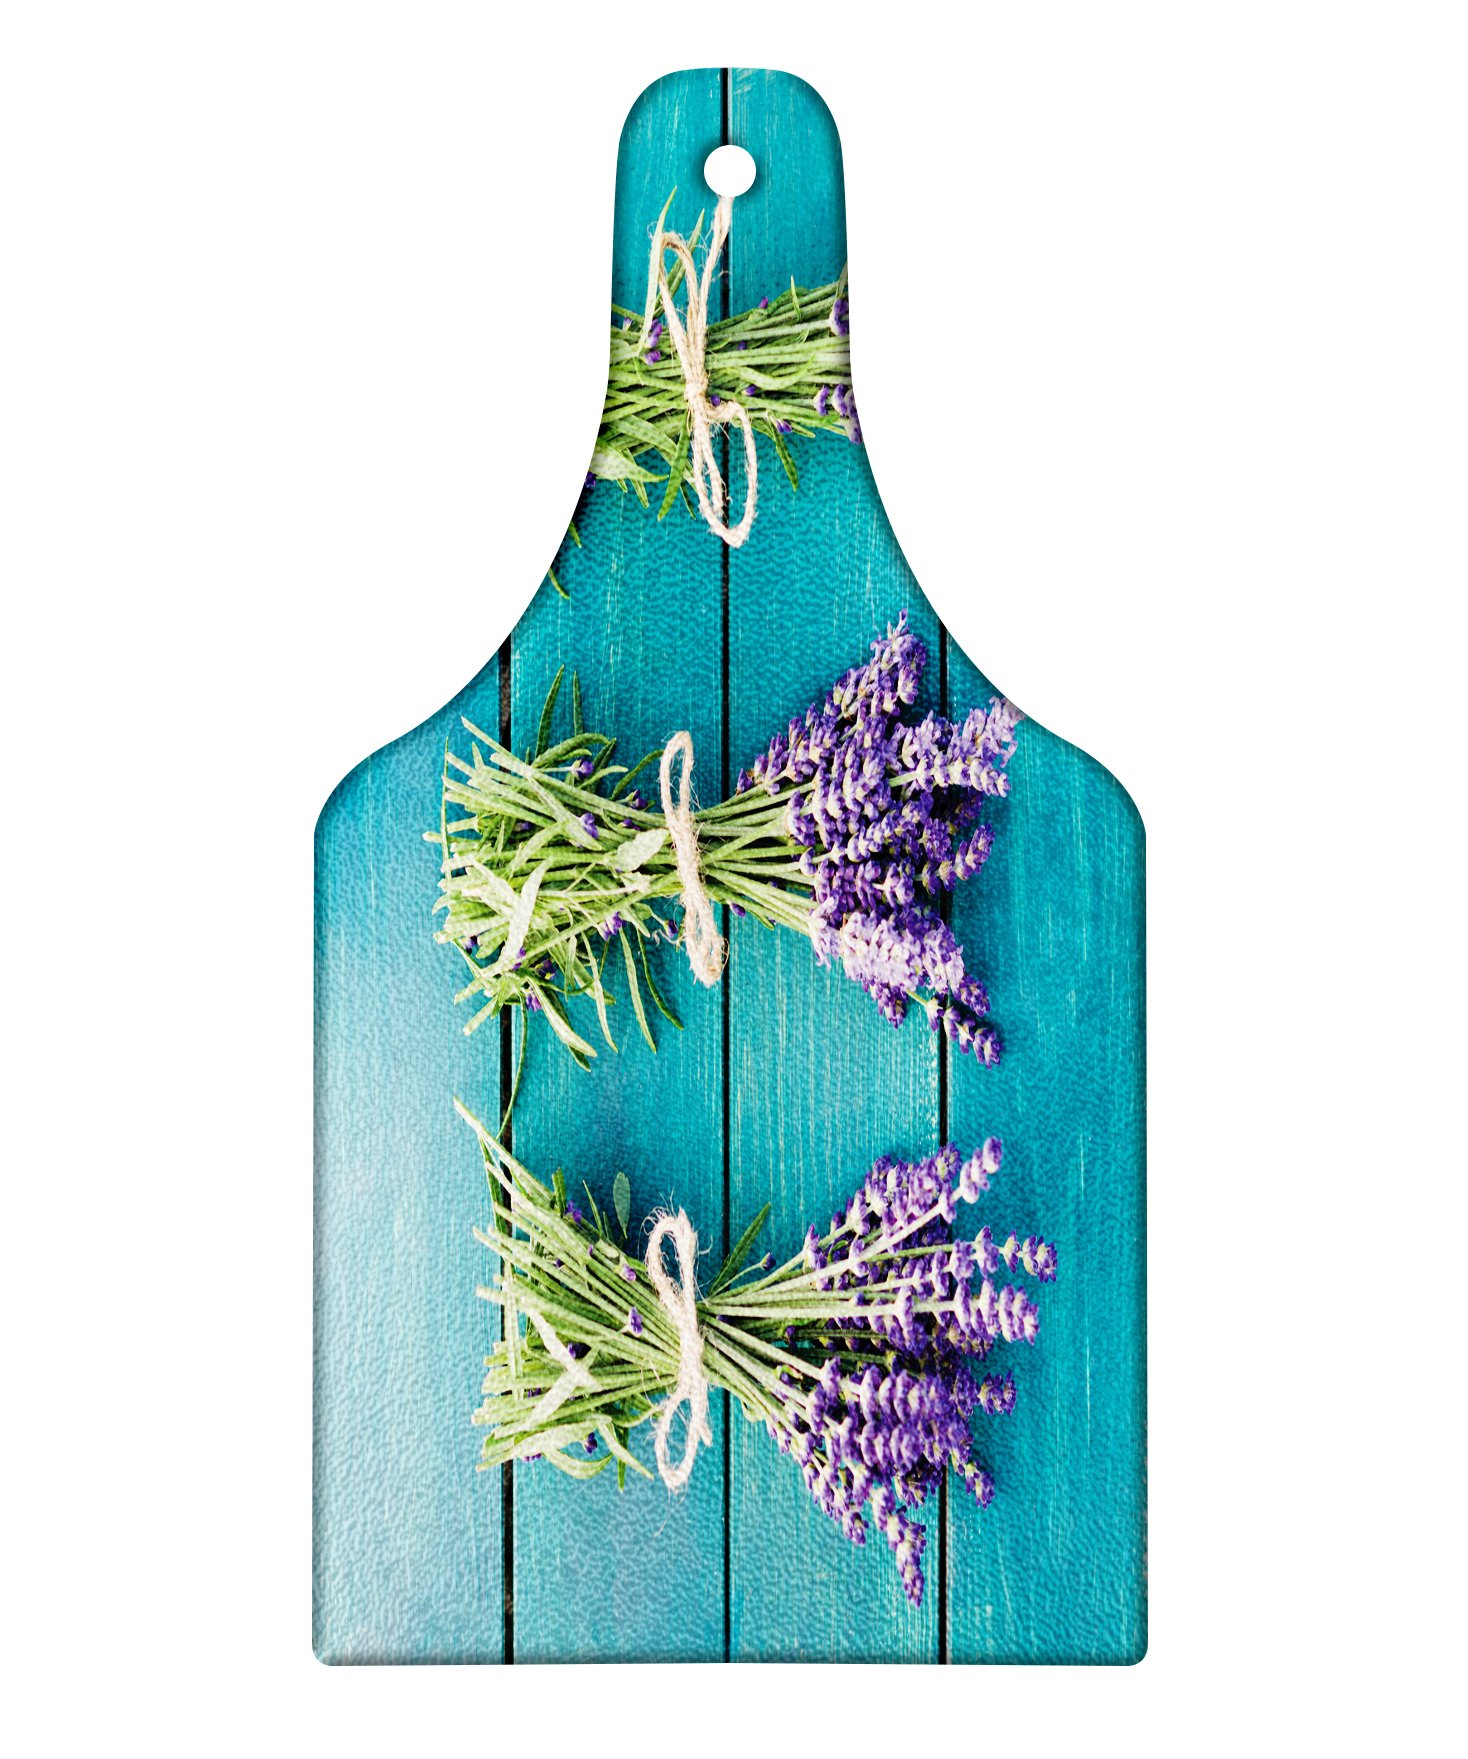 Lunarable Lavender Cutting Board, Fresh Lavender Bouquets on Blue Wooden Planks Rustic Relaxing Spa, Decorative Tempered Glass Cutting and Serving Board, Wine Bottle Shape, Sky Blue Lavender Green